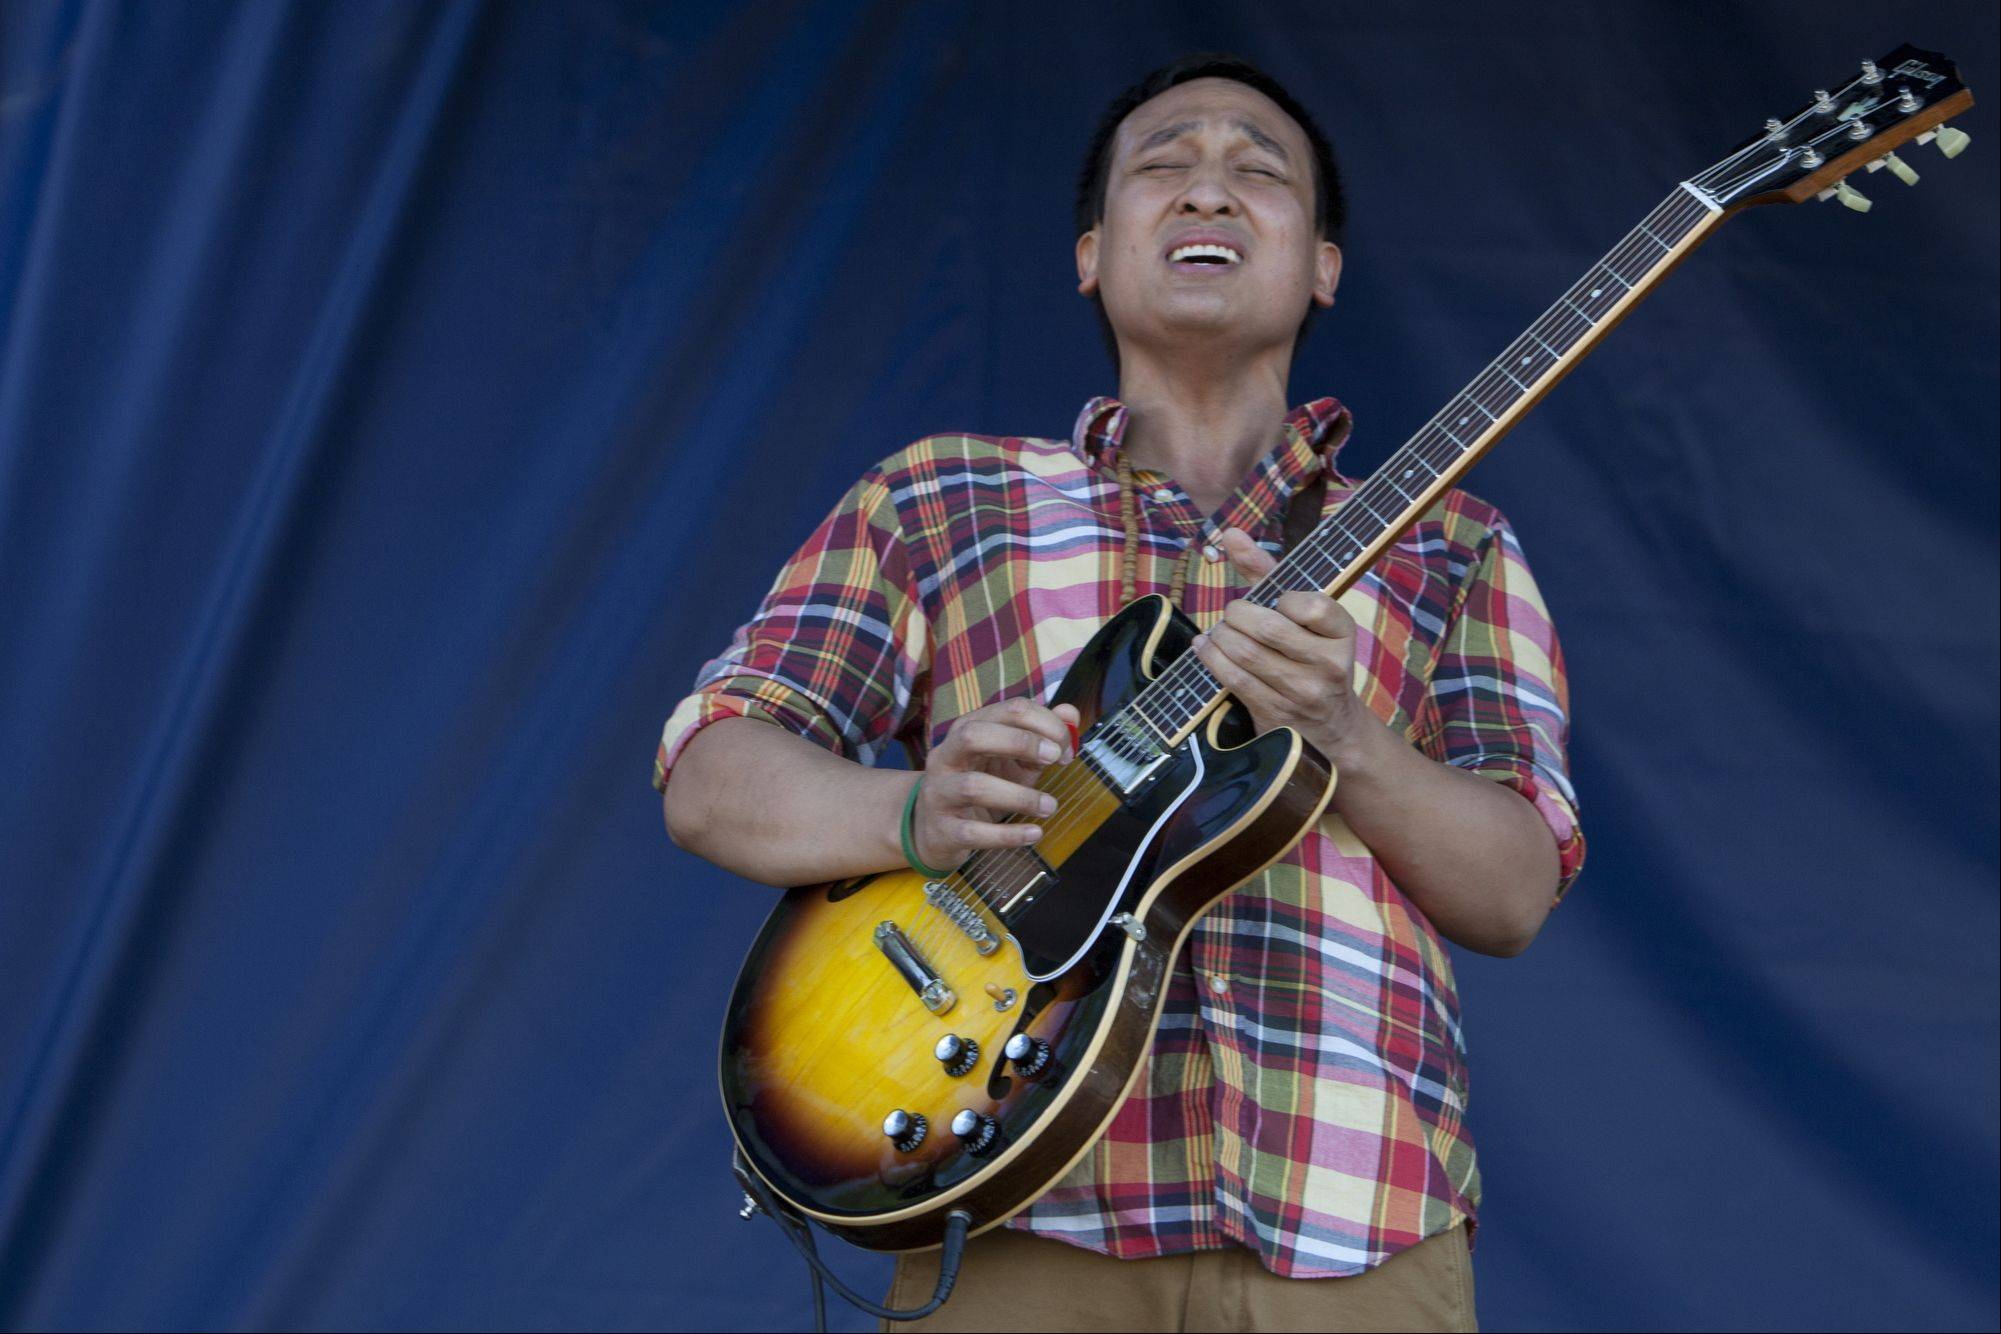 Danny Dancel performs during last year's Mundelein Community Days.